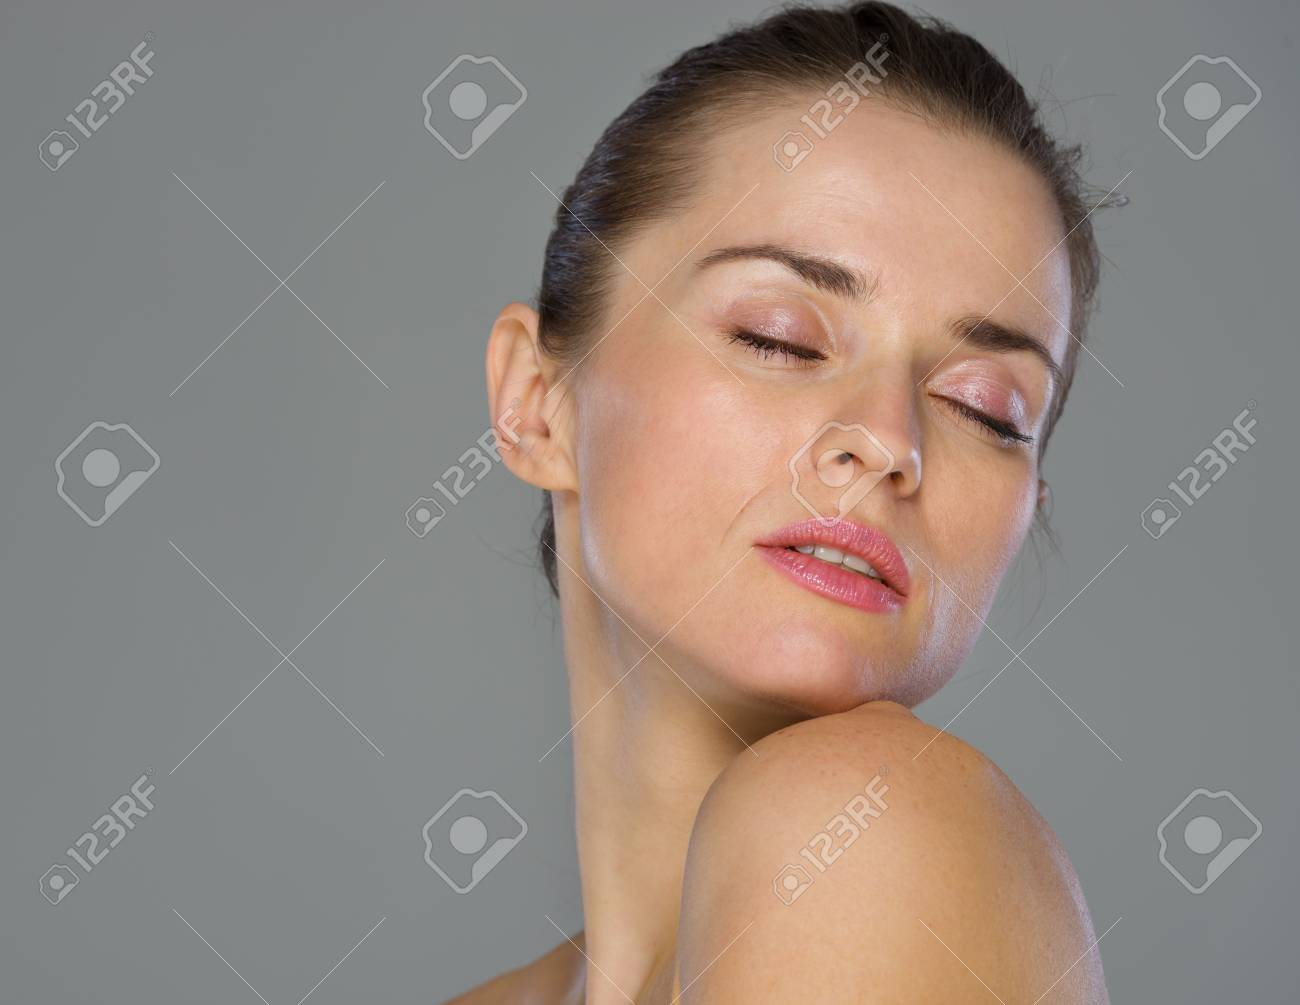 Beauty portrait of young woman isolated on gray background Stock Photo - 19848832